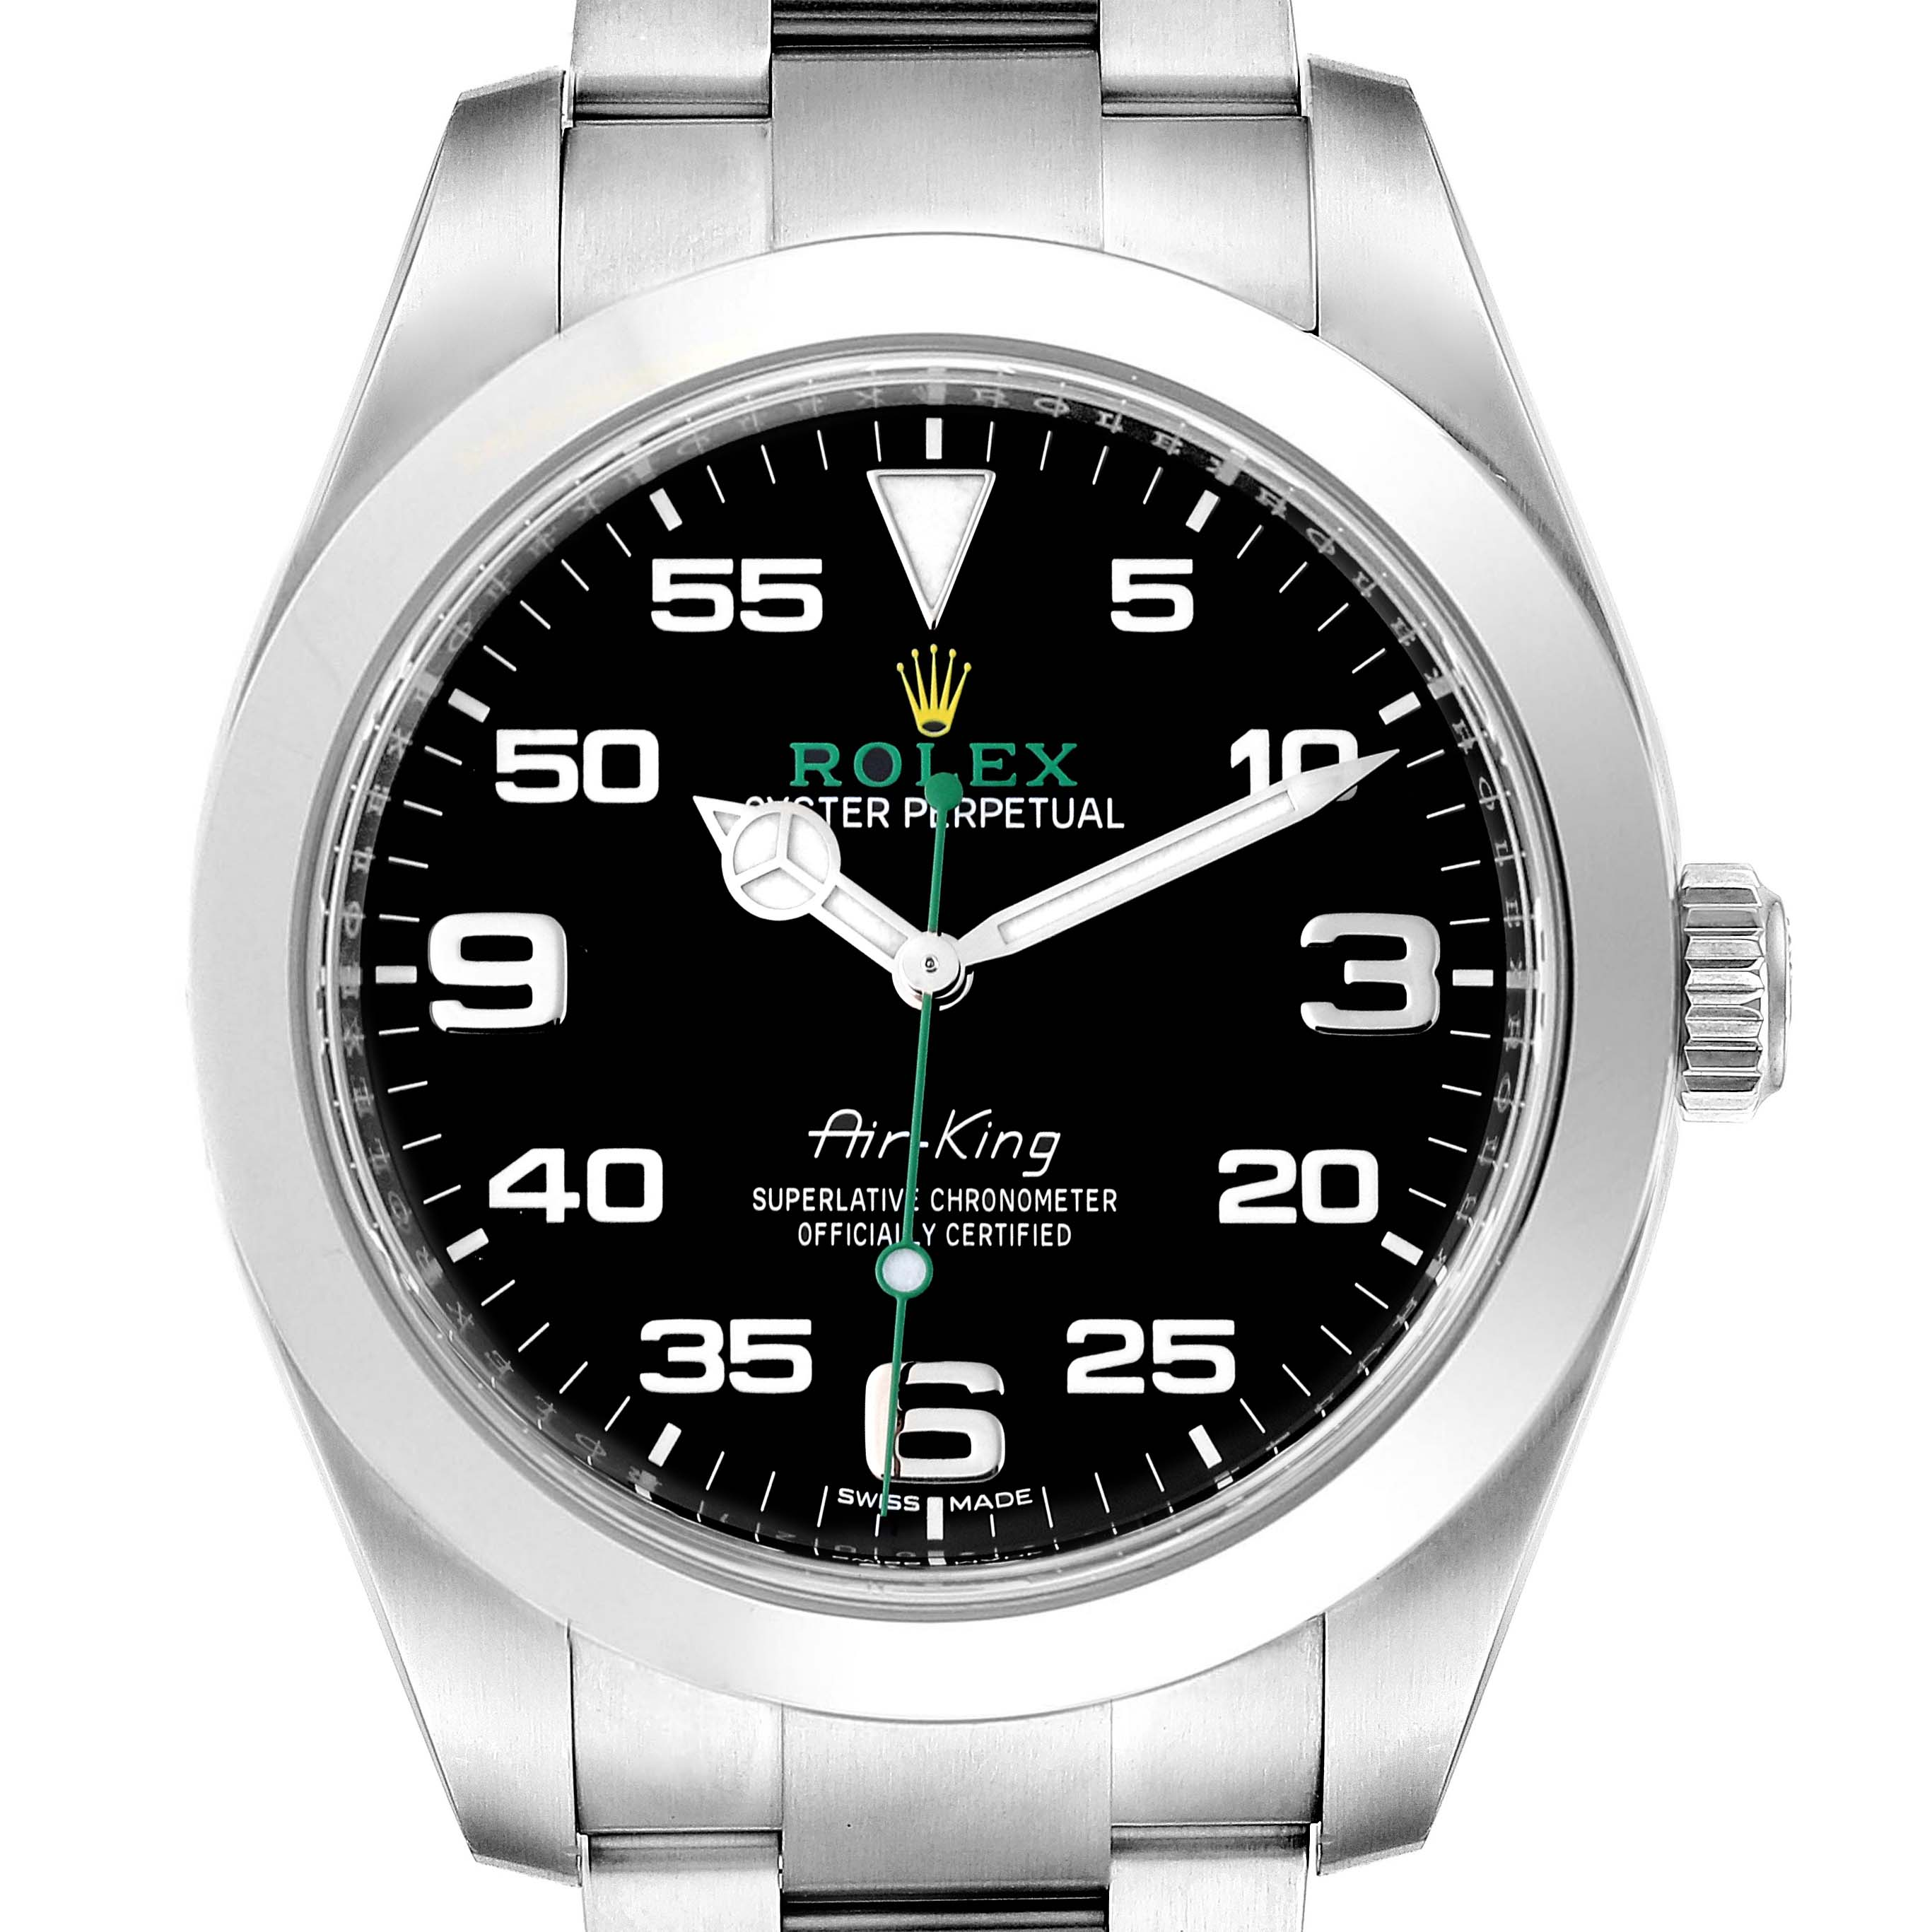 Rolex Oyster Perpetual Air King Black Dial Steel Watch 116900 Box Card